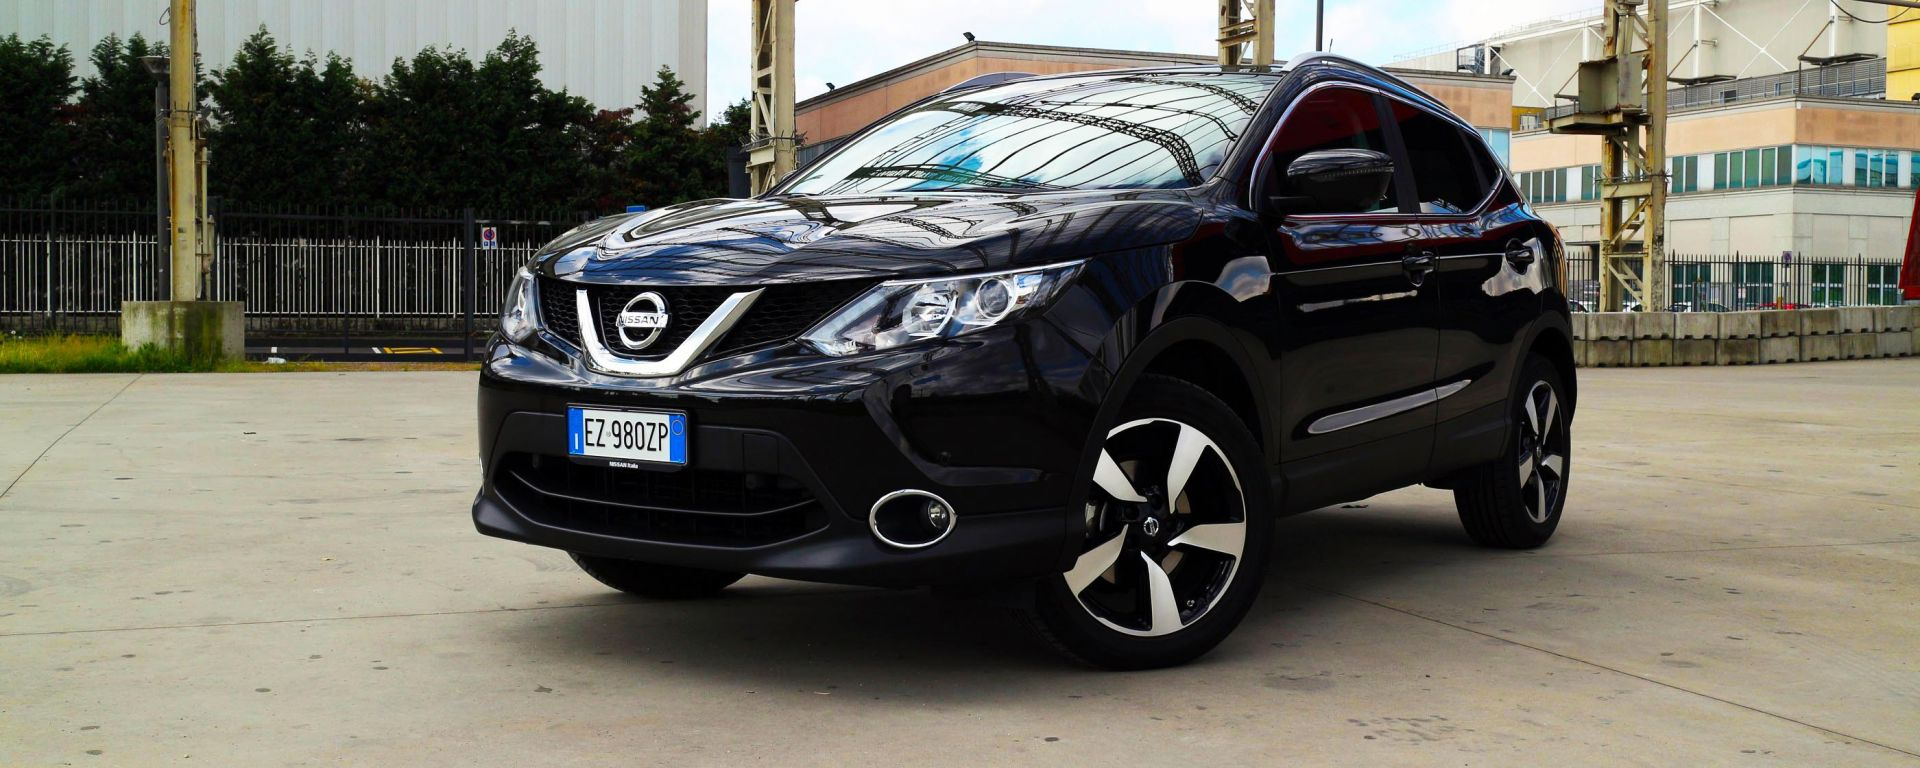 test drive nissan qashqai 1 5 dci la prova su strada. Black Bedroom Furniture Sets. Home Design Ideas